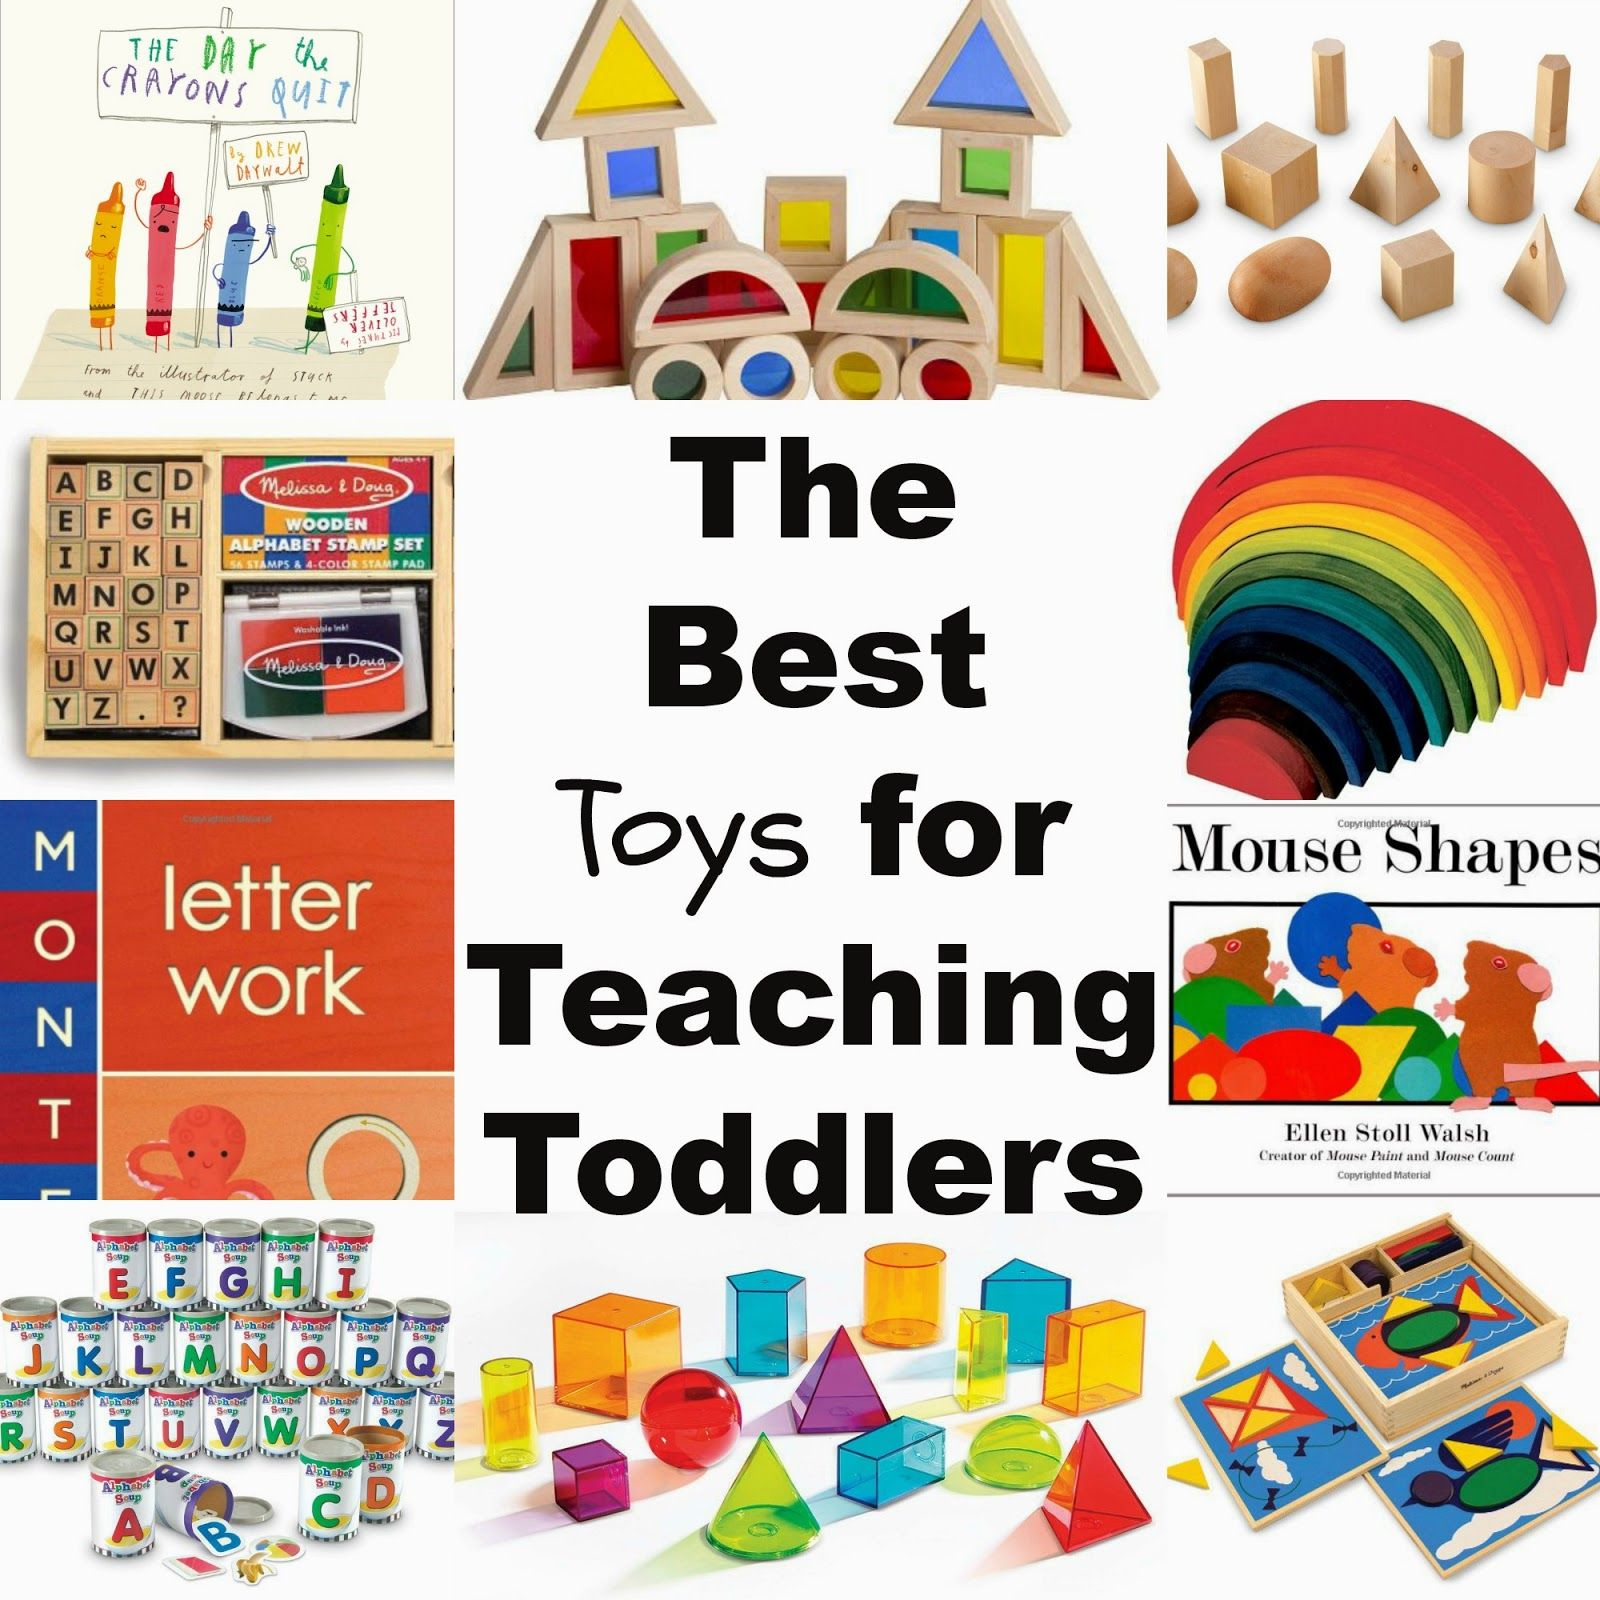 The Best Toys for Teaching Toddlers Through Play